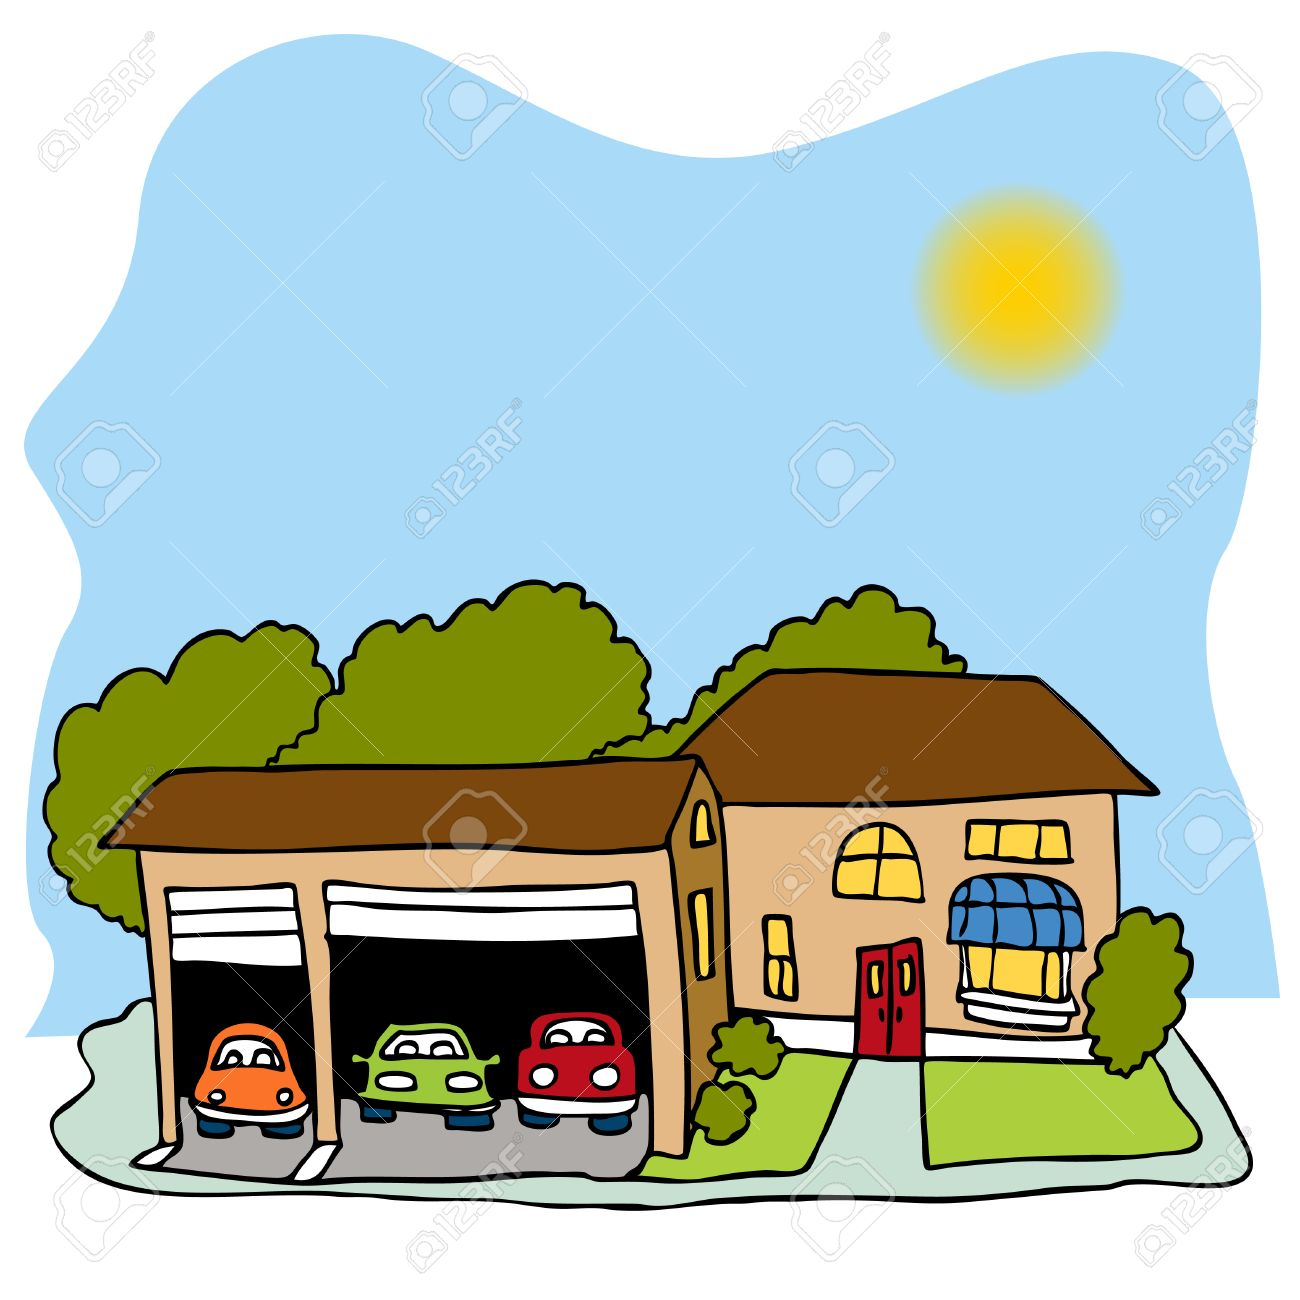 An image of a house with a three car garage. Stock Vector - 8186954